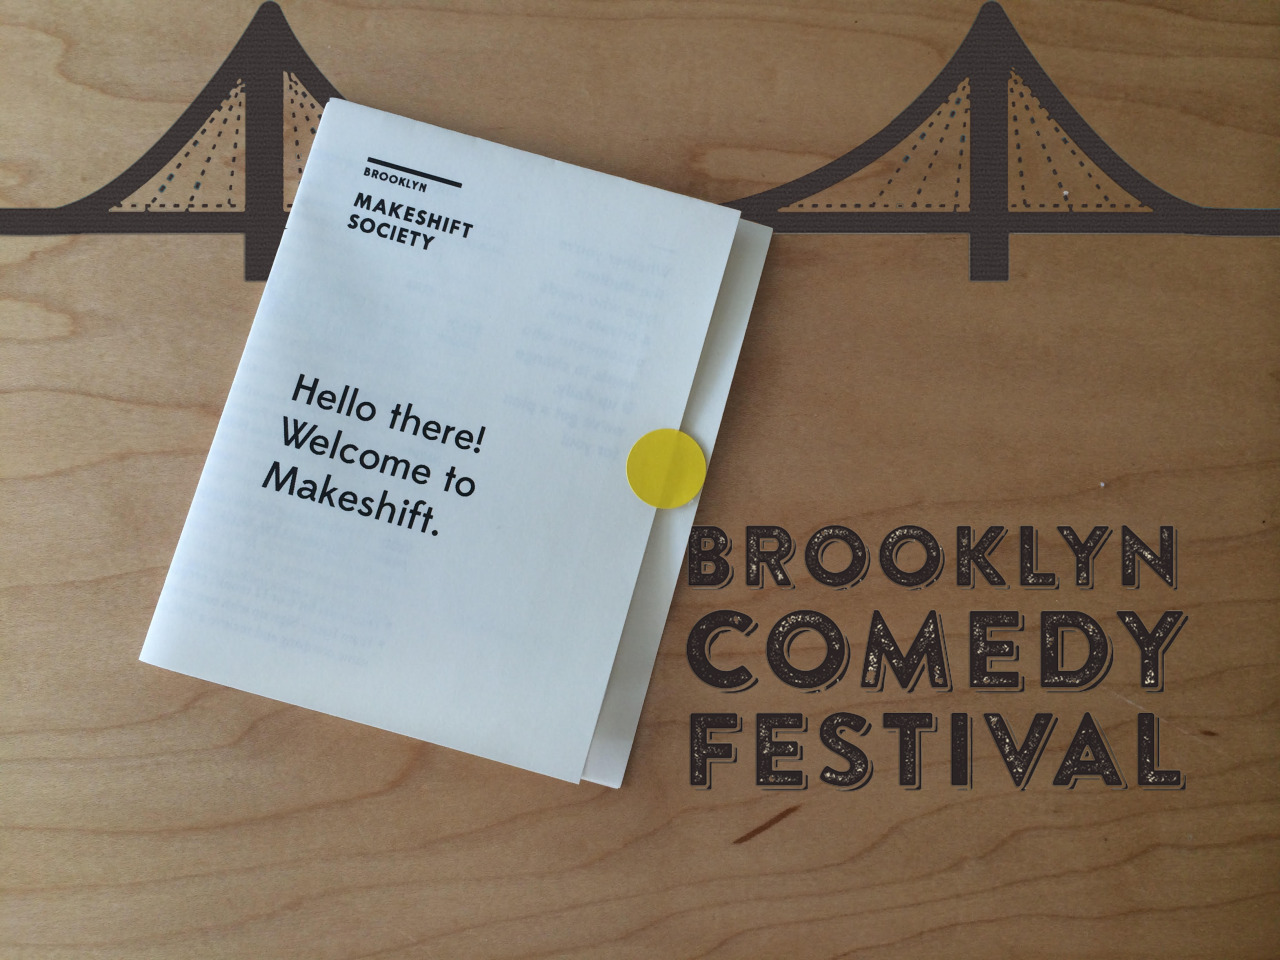 Enjoying our new space at Makeshift Society Brooklyn and looking forward to some exciting announcements this week before we head off the Outside Land's The Barbary Comedy and Improv tent in San Francisco this weekend!